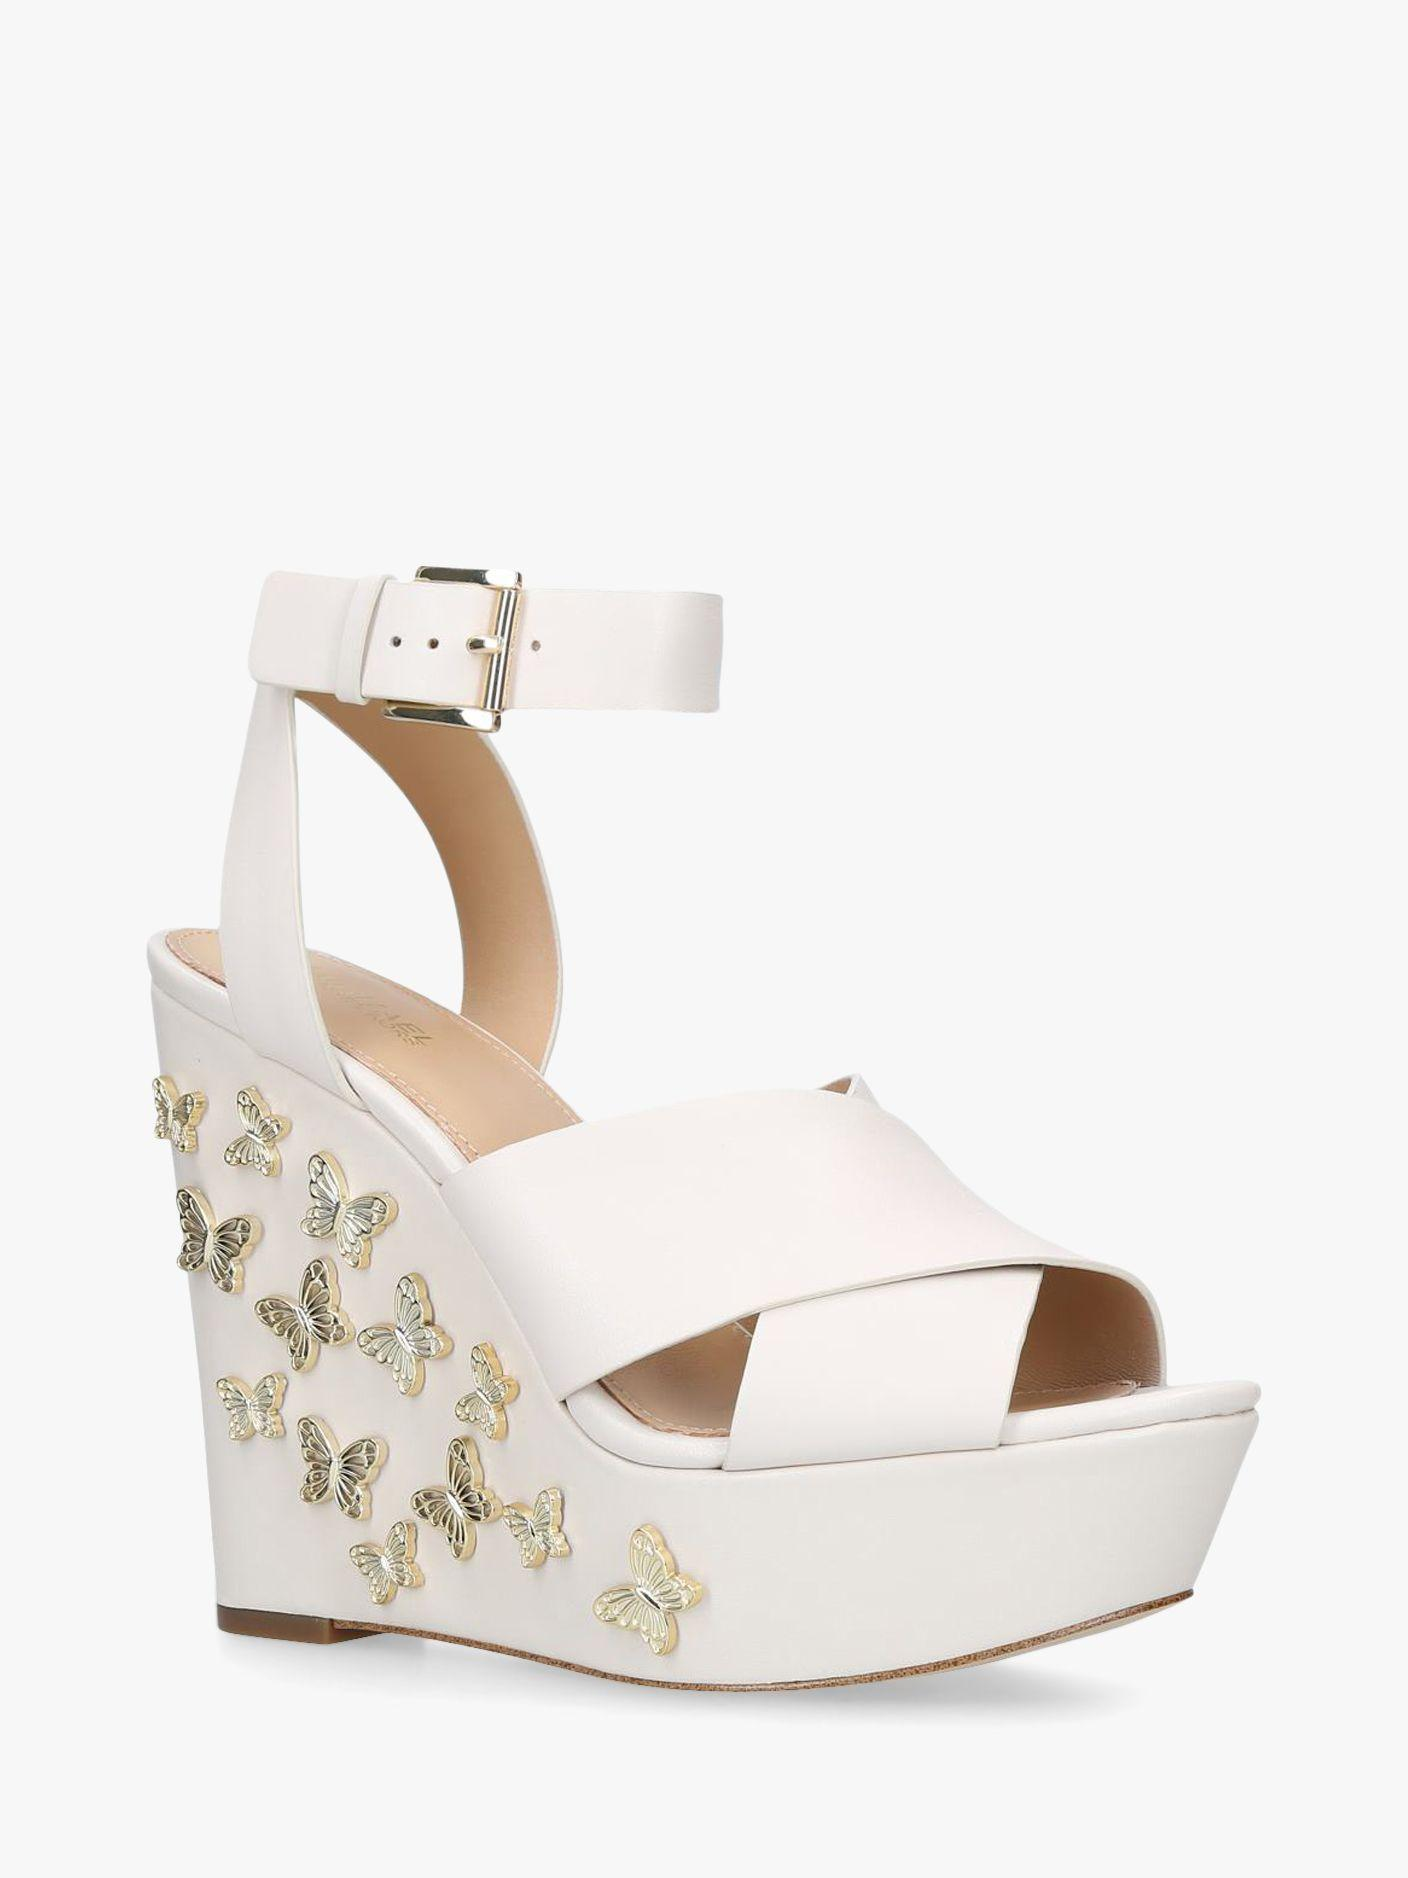 c3983026317 Michael Kors Michael Lacey Embellished Wedge Sandals in Natural - Lyst